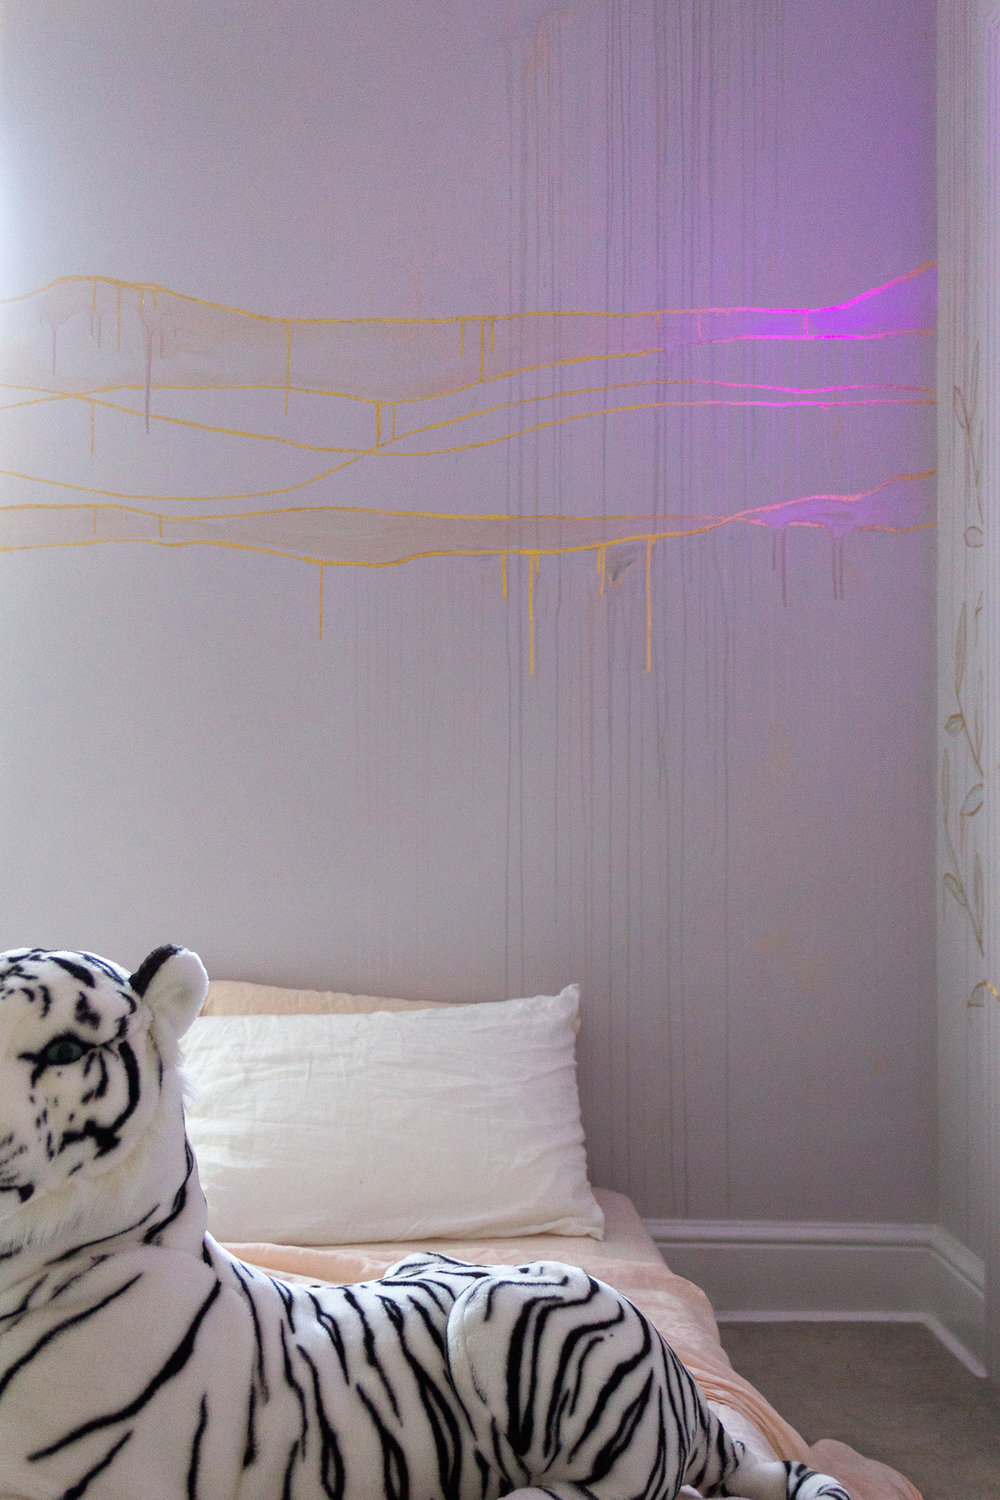 Gold leaf feature wall in cosy bedroom, the wall features waves lit up by purple light. In the foreground is a toy black and white tiger.